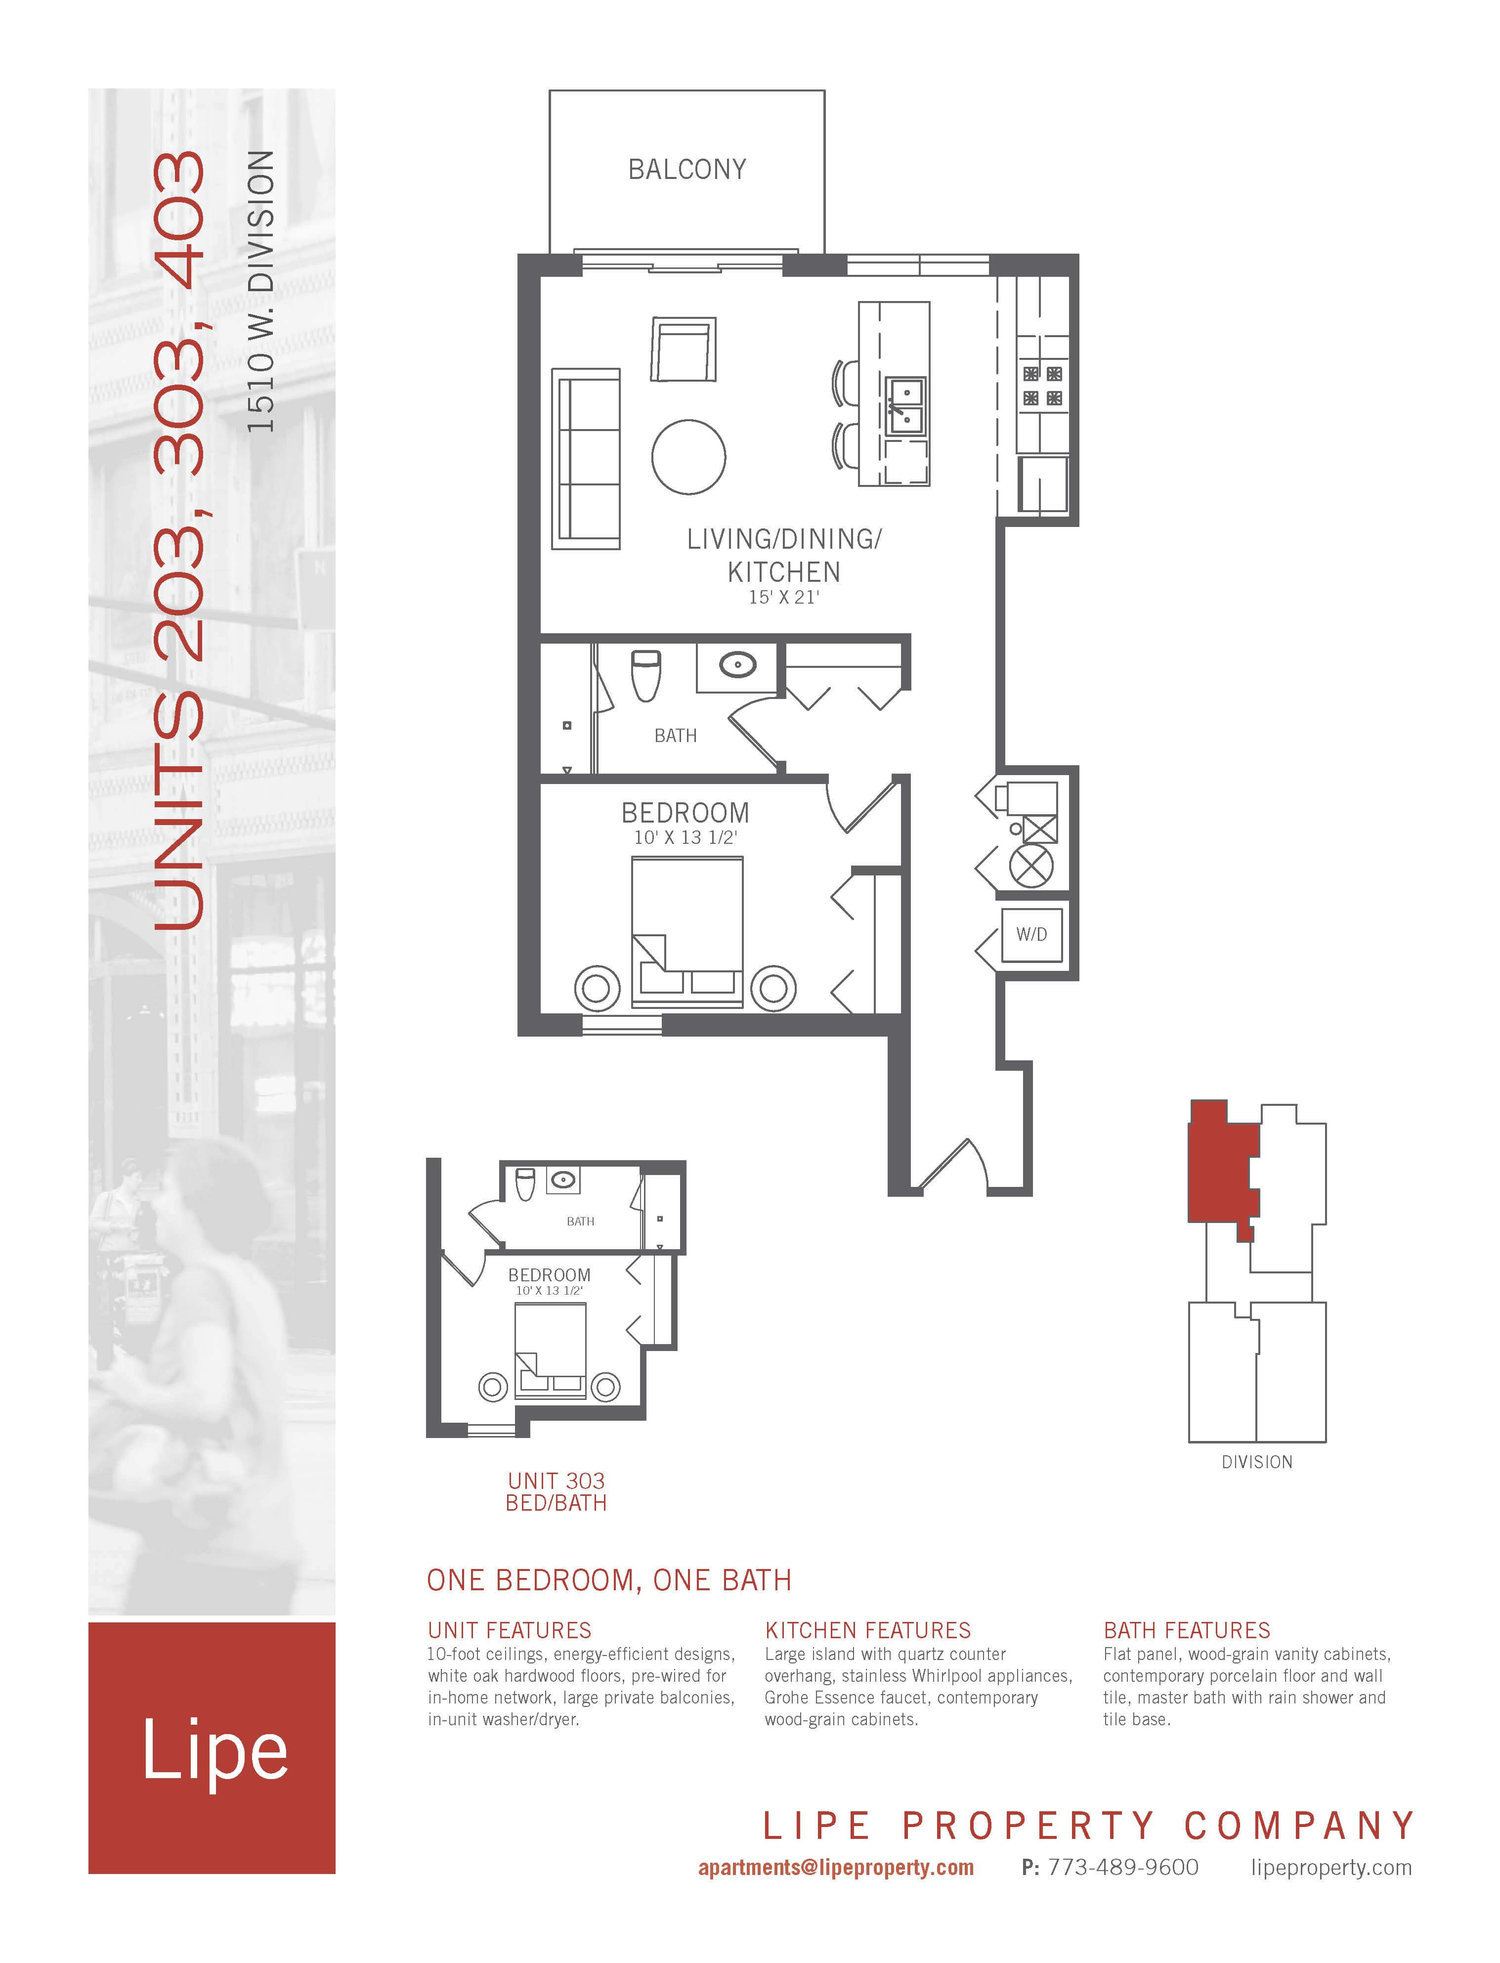 apartment-for-rent-1510-W-Division-Chicago-203,303,403-Floor-Plan.jpg